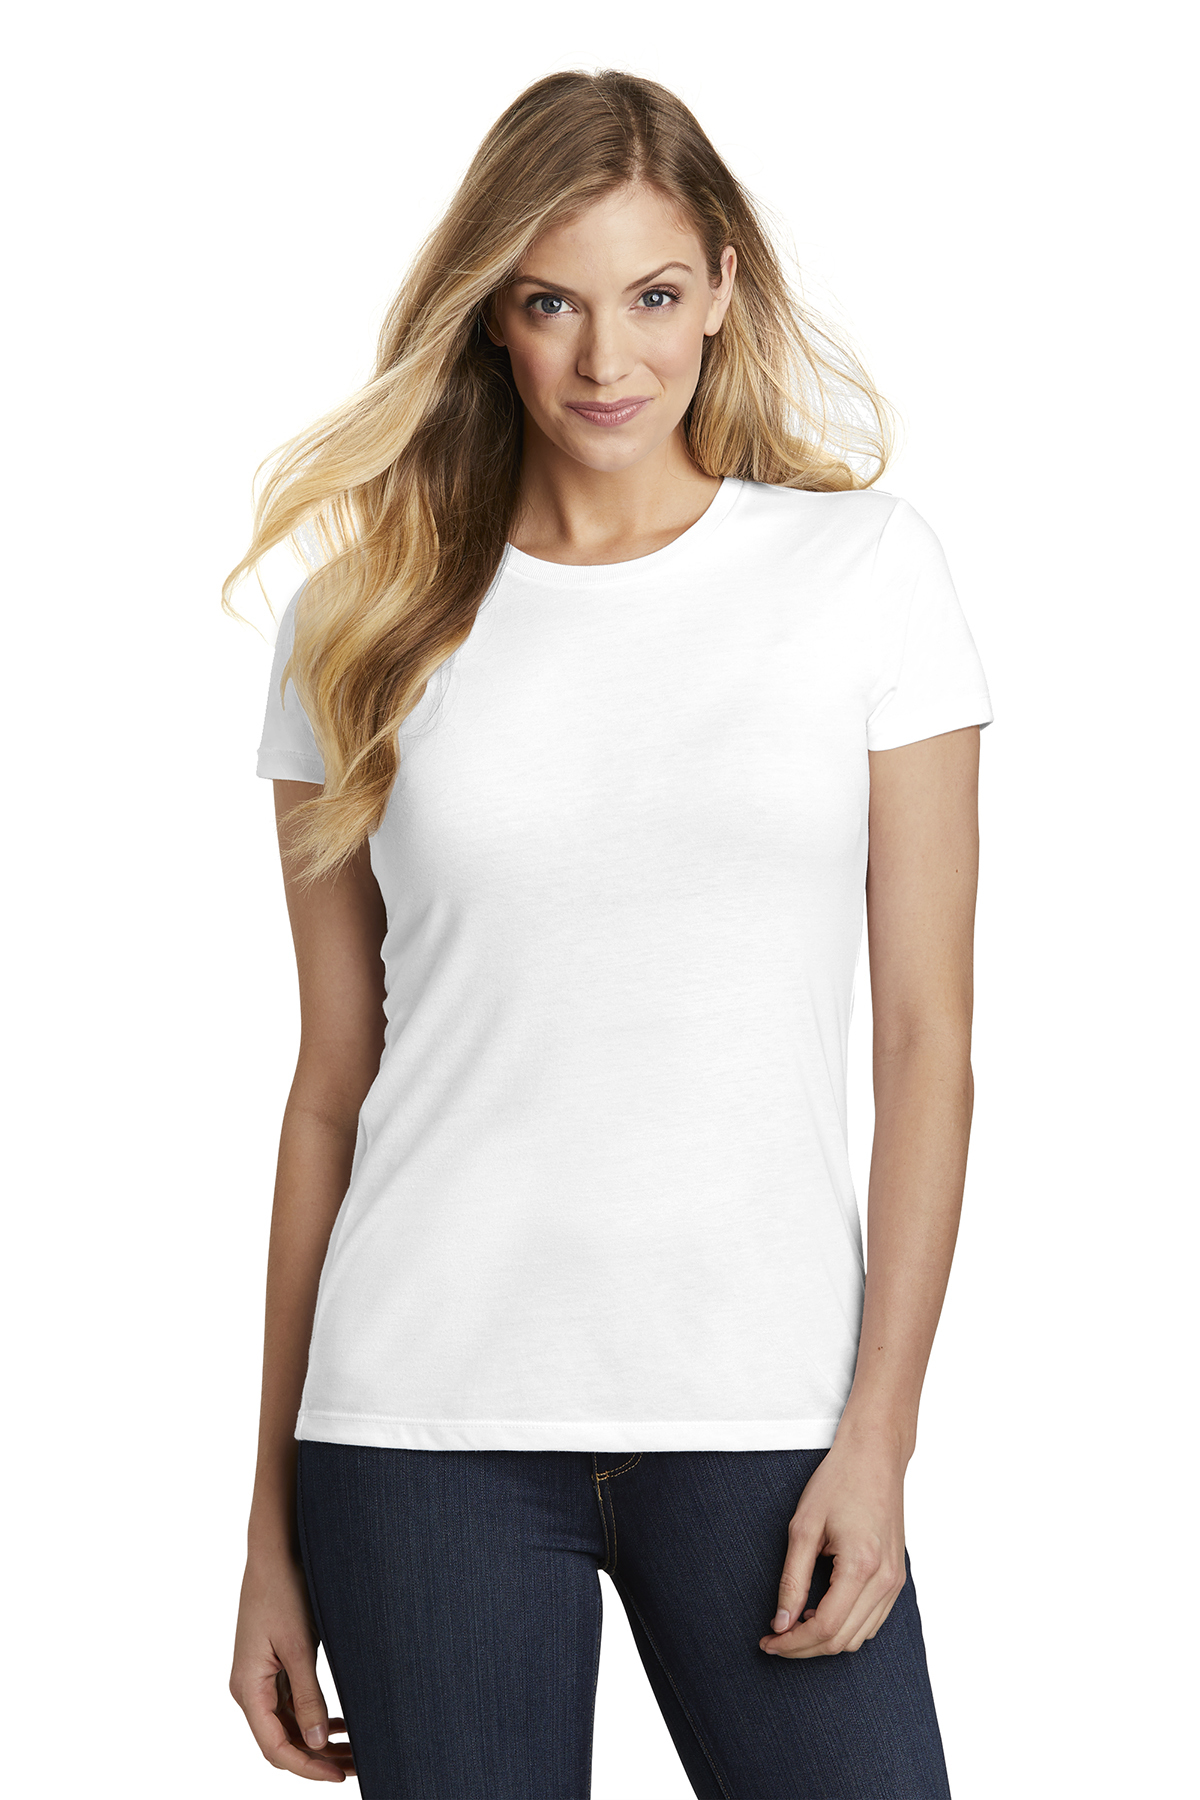 District DT155 - Women's Fitted Perfect Tri Tee